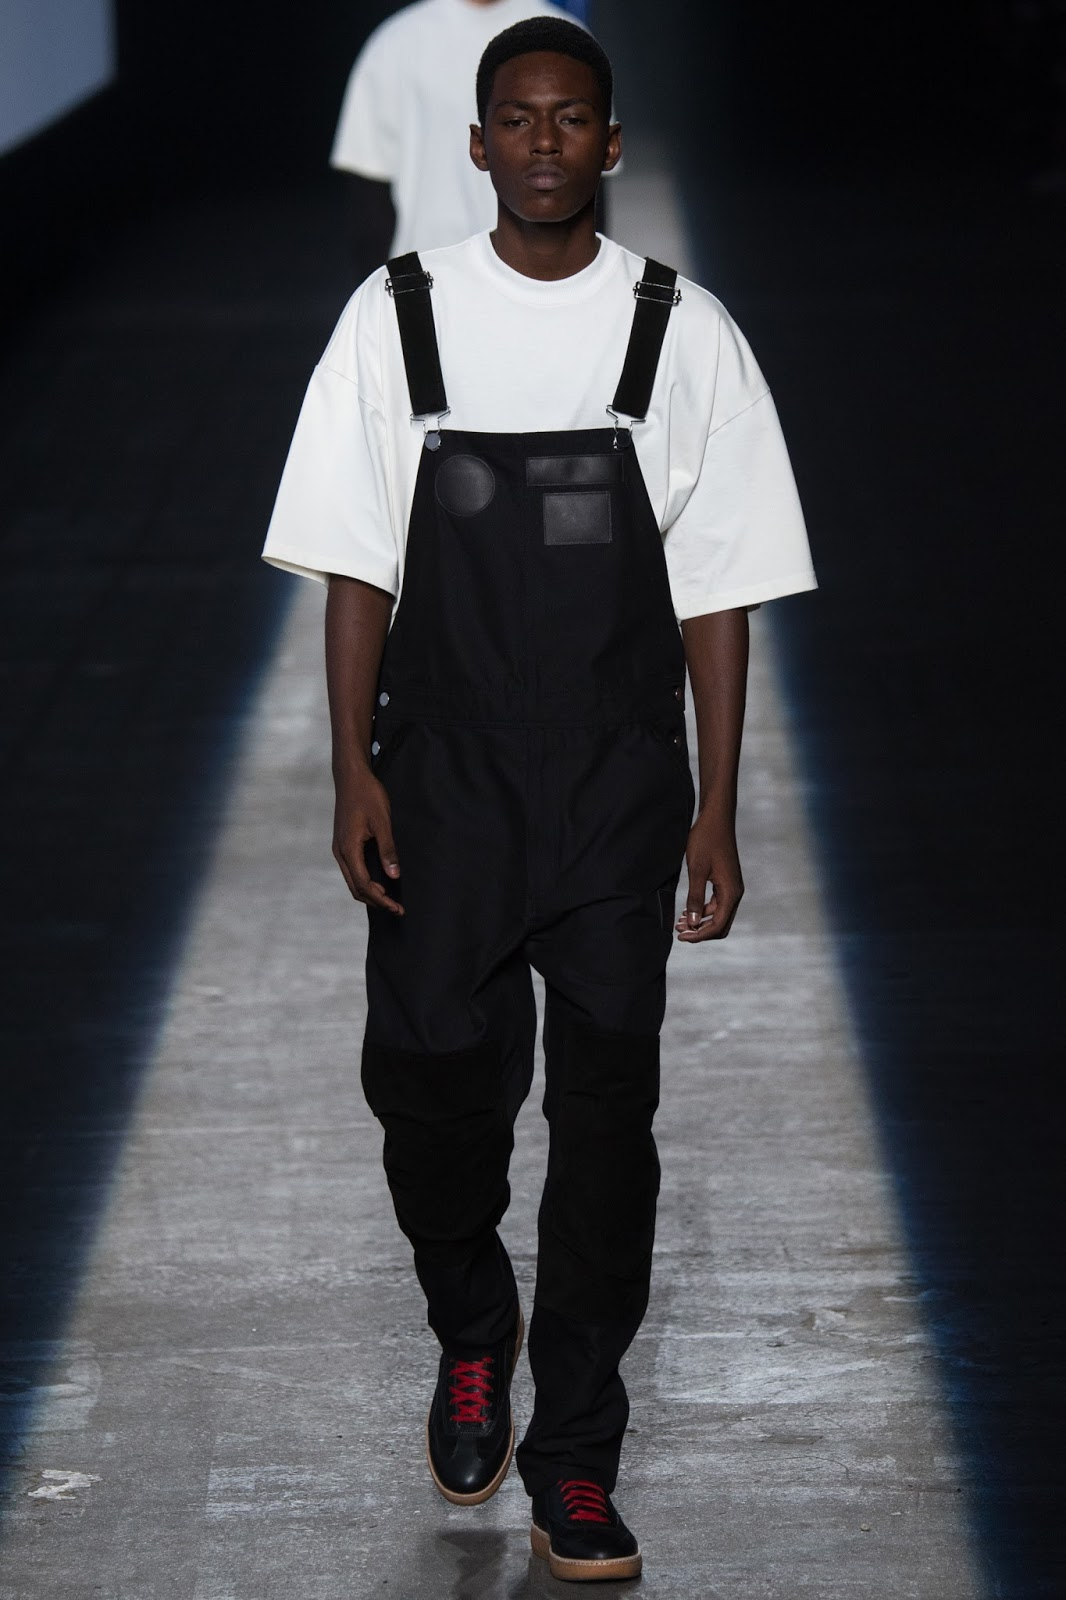 NYFW new york fashion week dungarees menswear